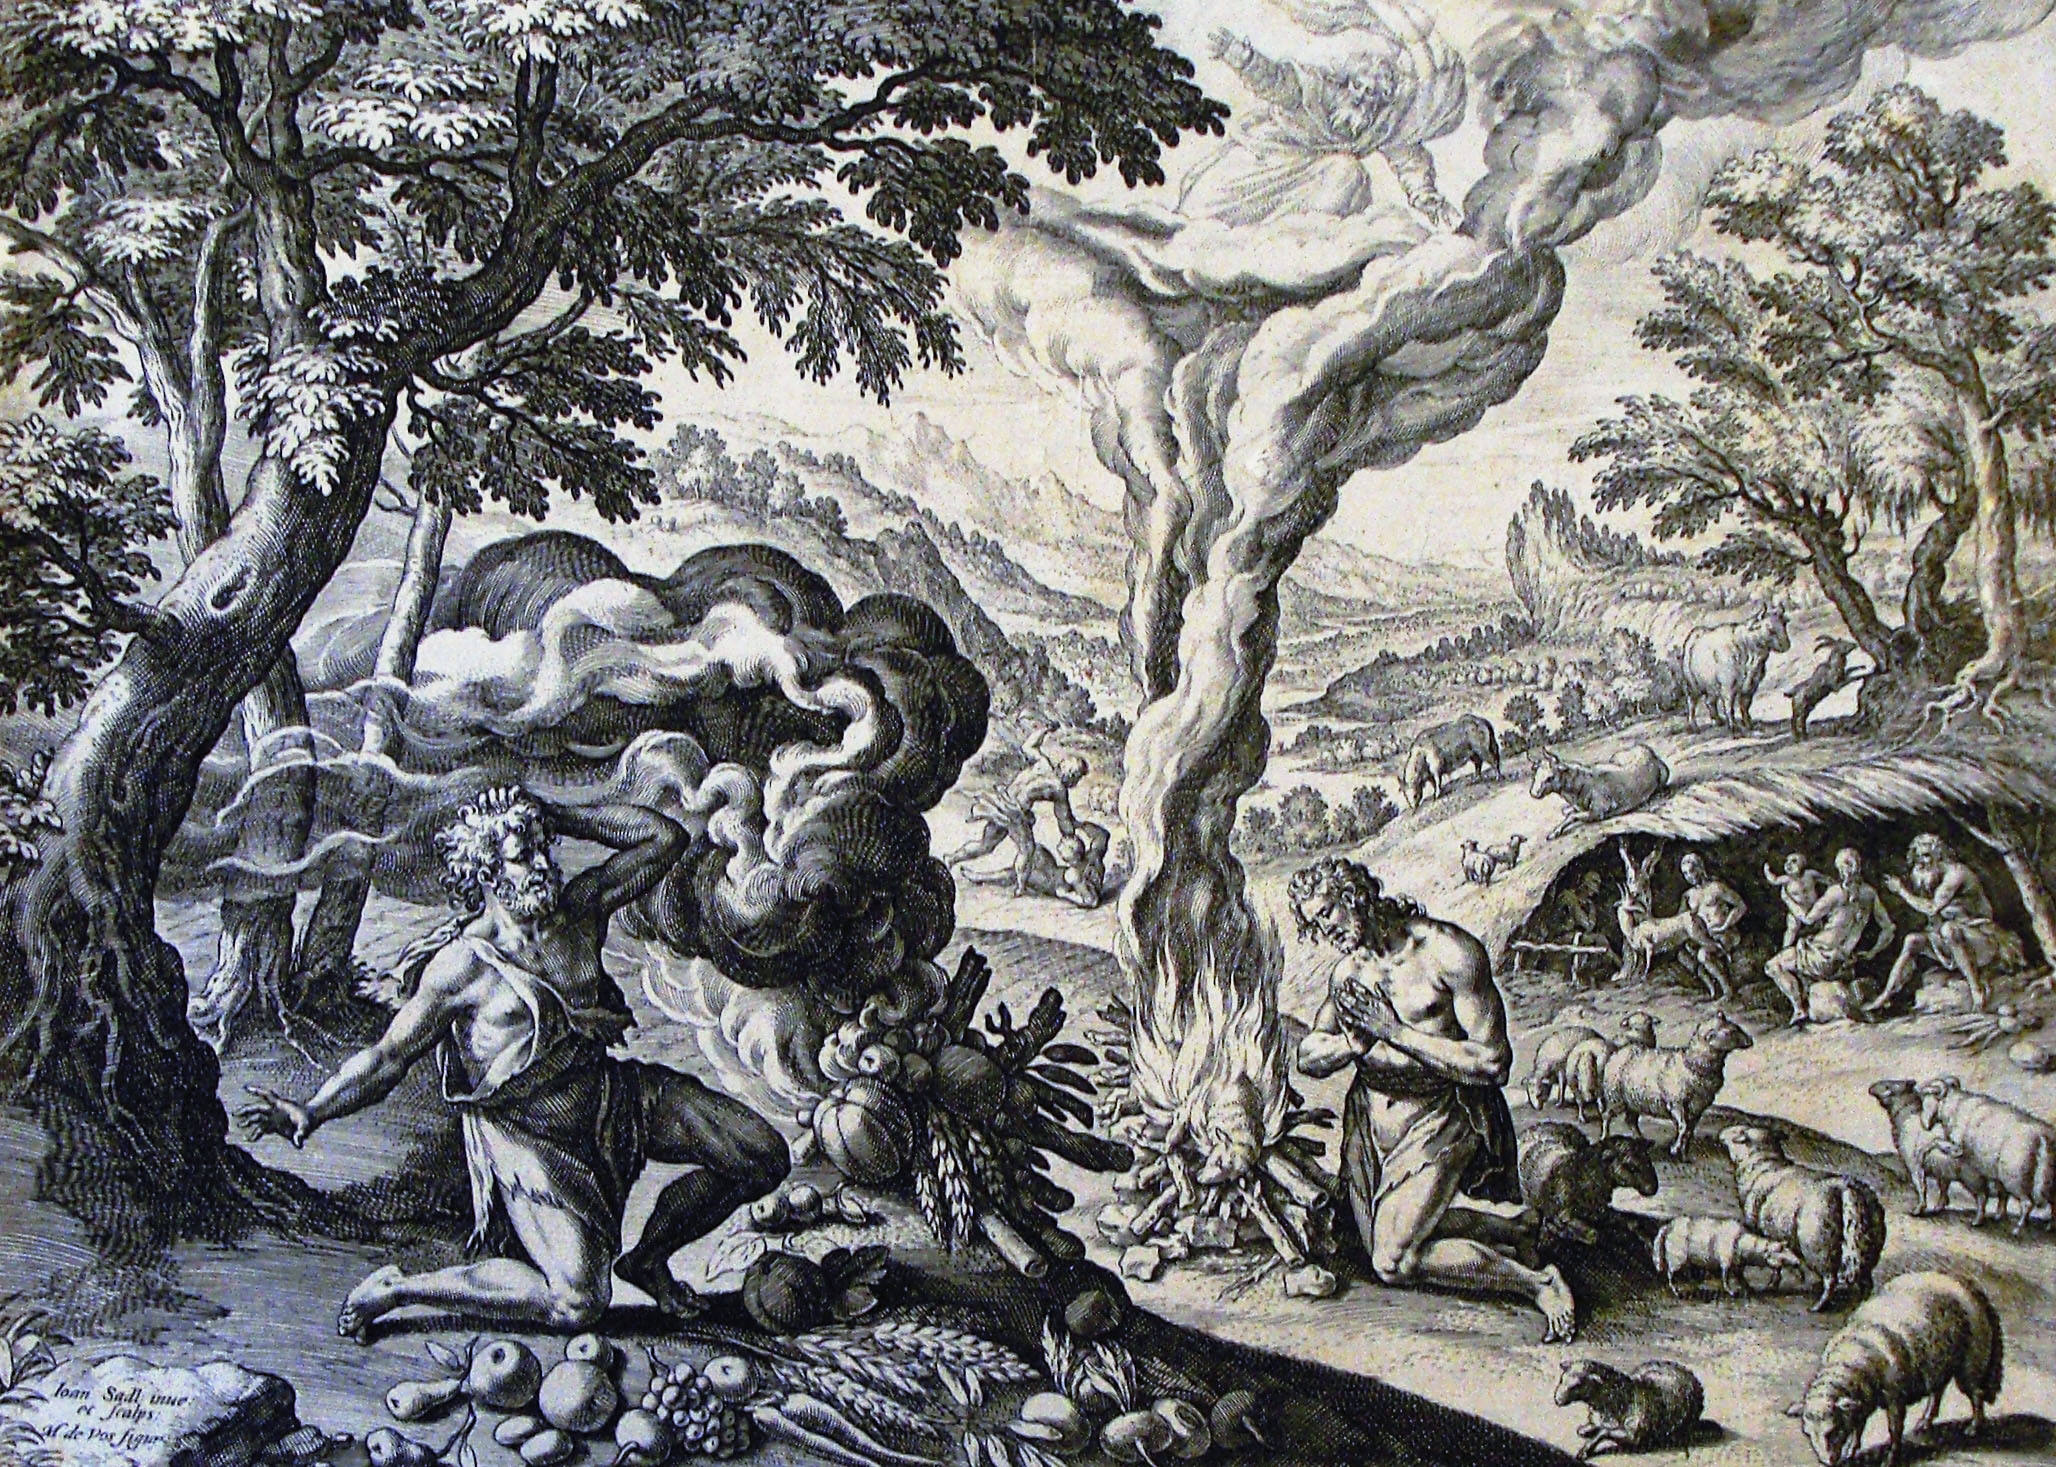 file the phillip medhurst picture torah 31 cain and abel make an